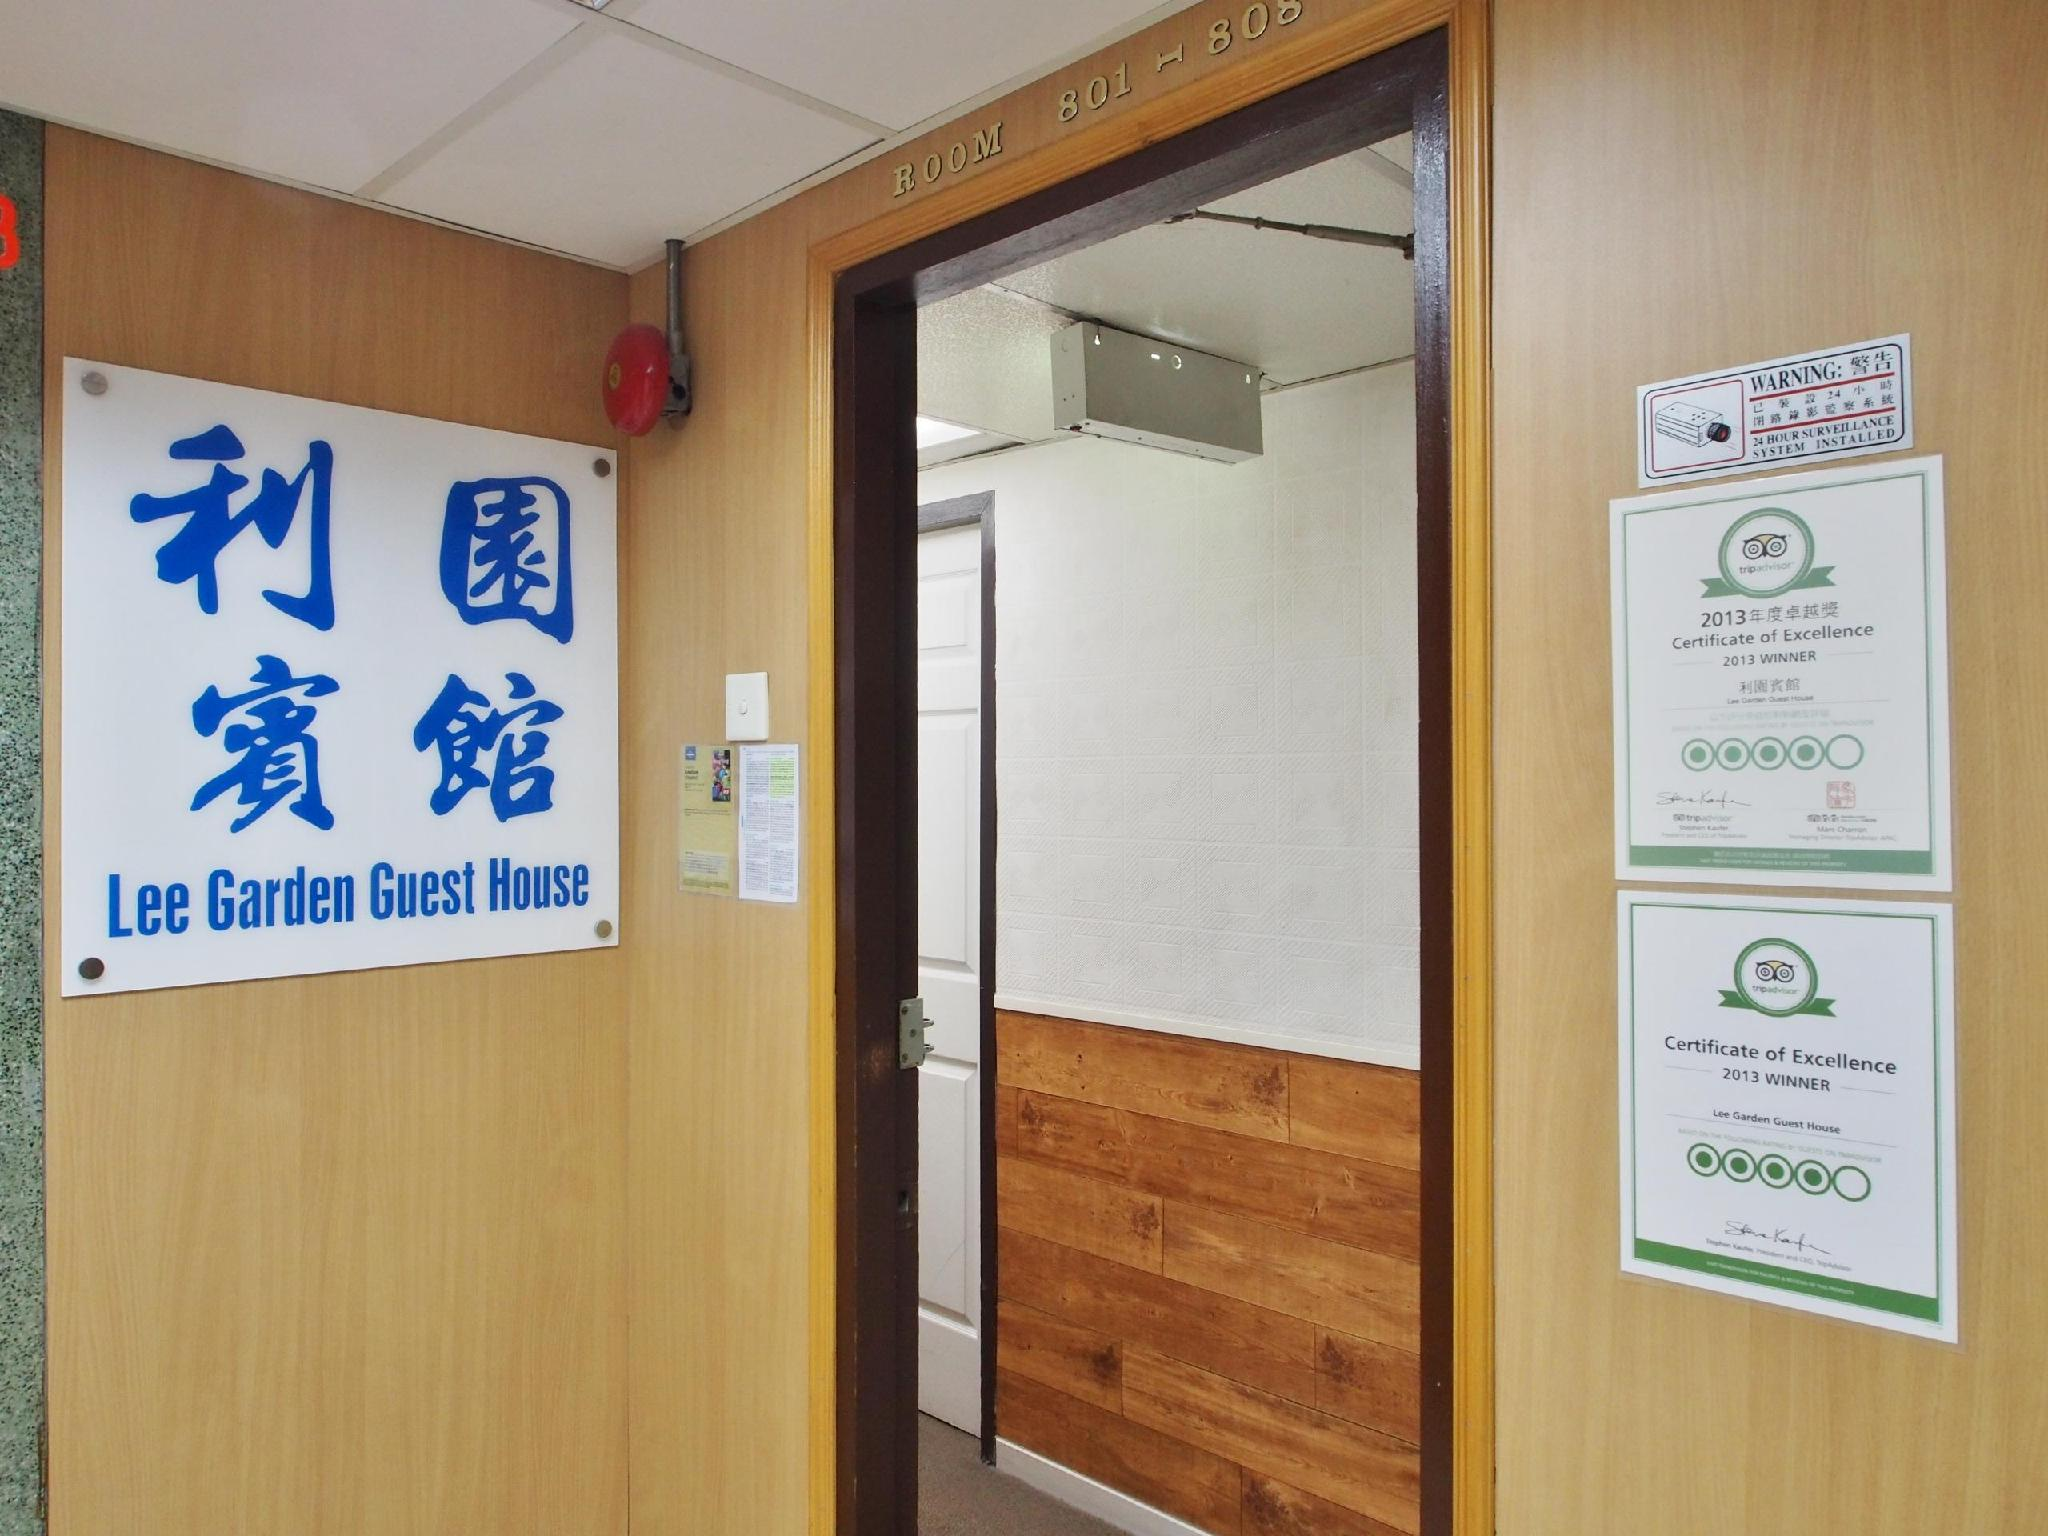 Best Price on Lee Garden Guest House in Hong Kong Reviews